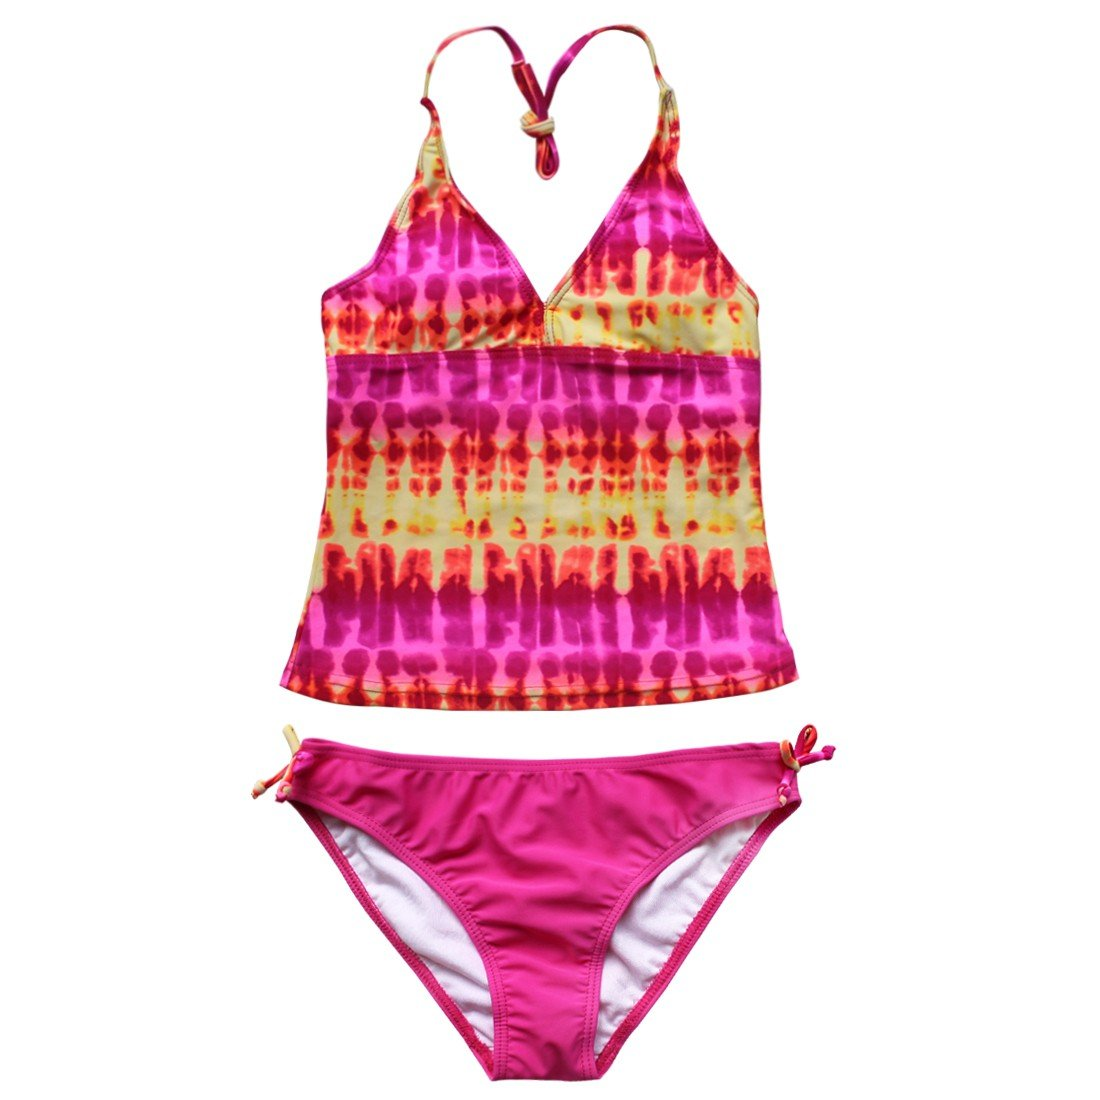 CHICTRY Big Girl's Youth 2 Piece Tie-Dye/Flower Bathing Suit Tankini Swimwear Swimsuit